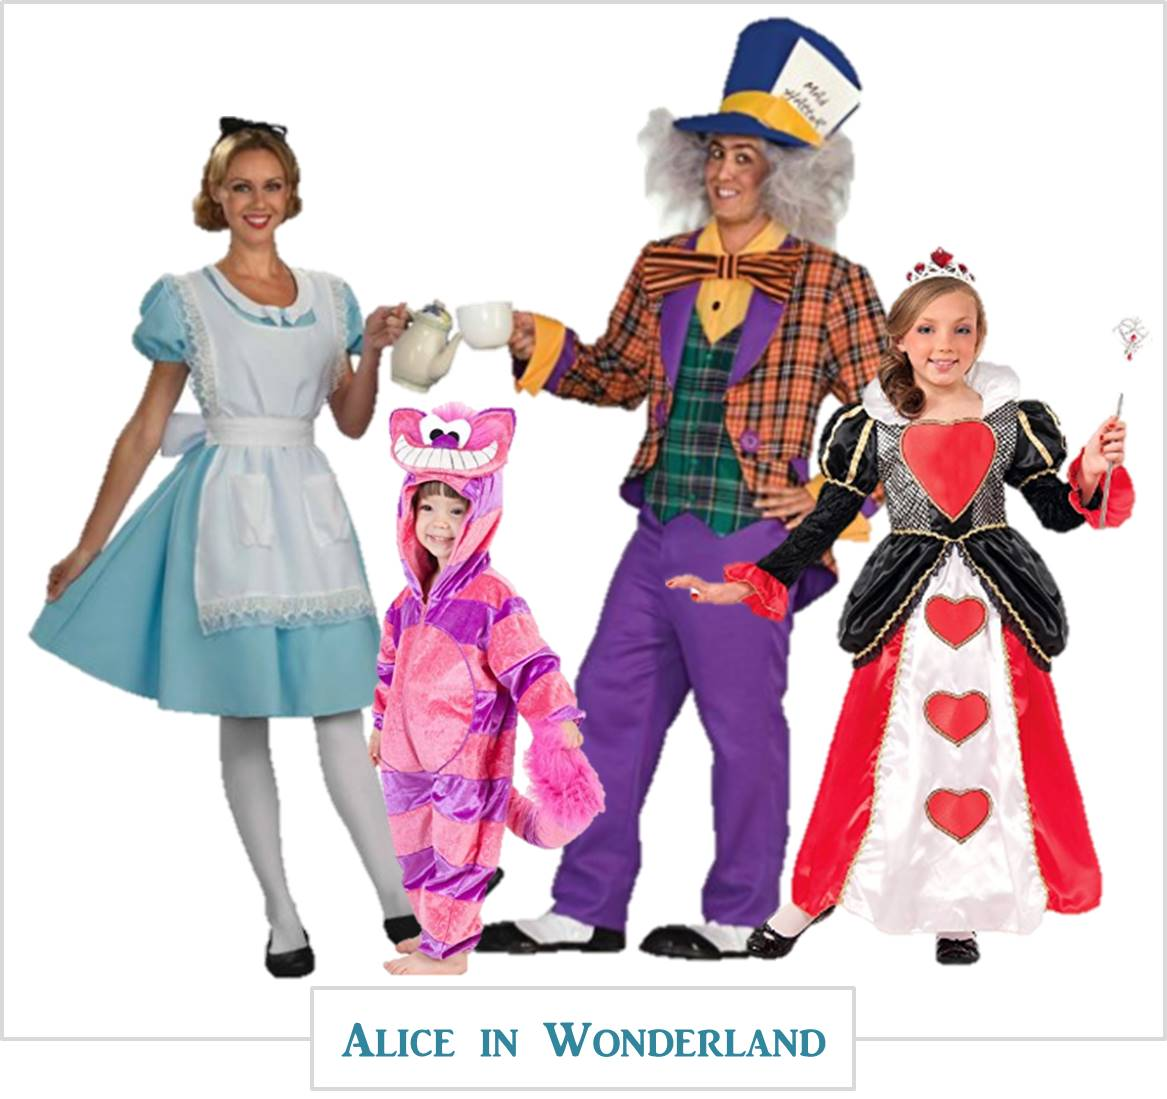 Alice In Wonderland Halloween Costume Family.Halloween Costumes For The Family Mylitter One Deal At A Time